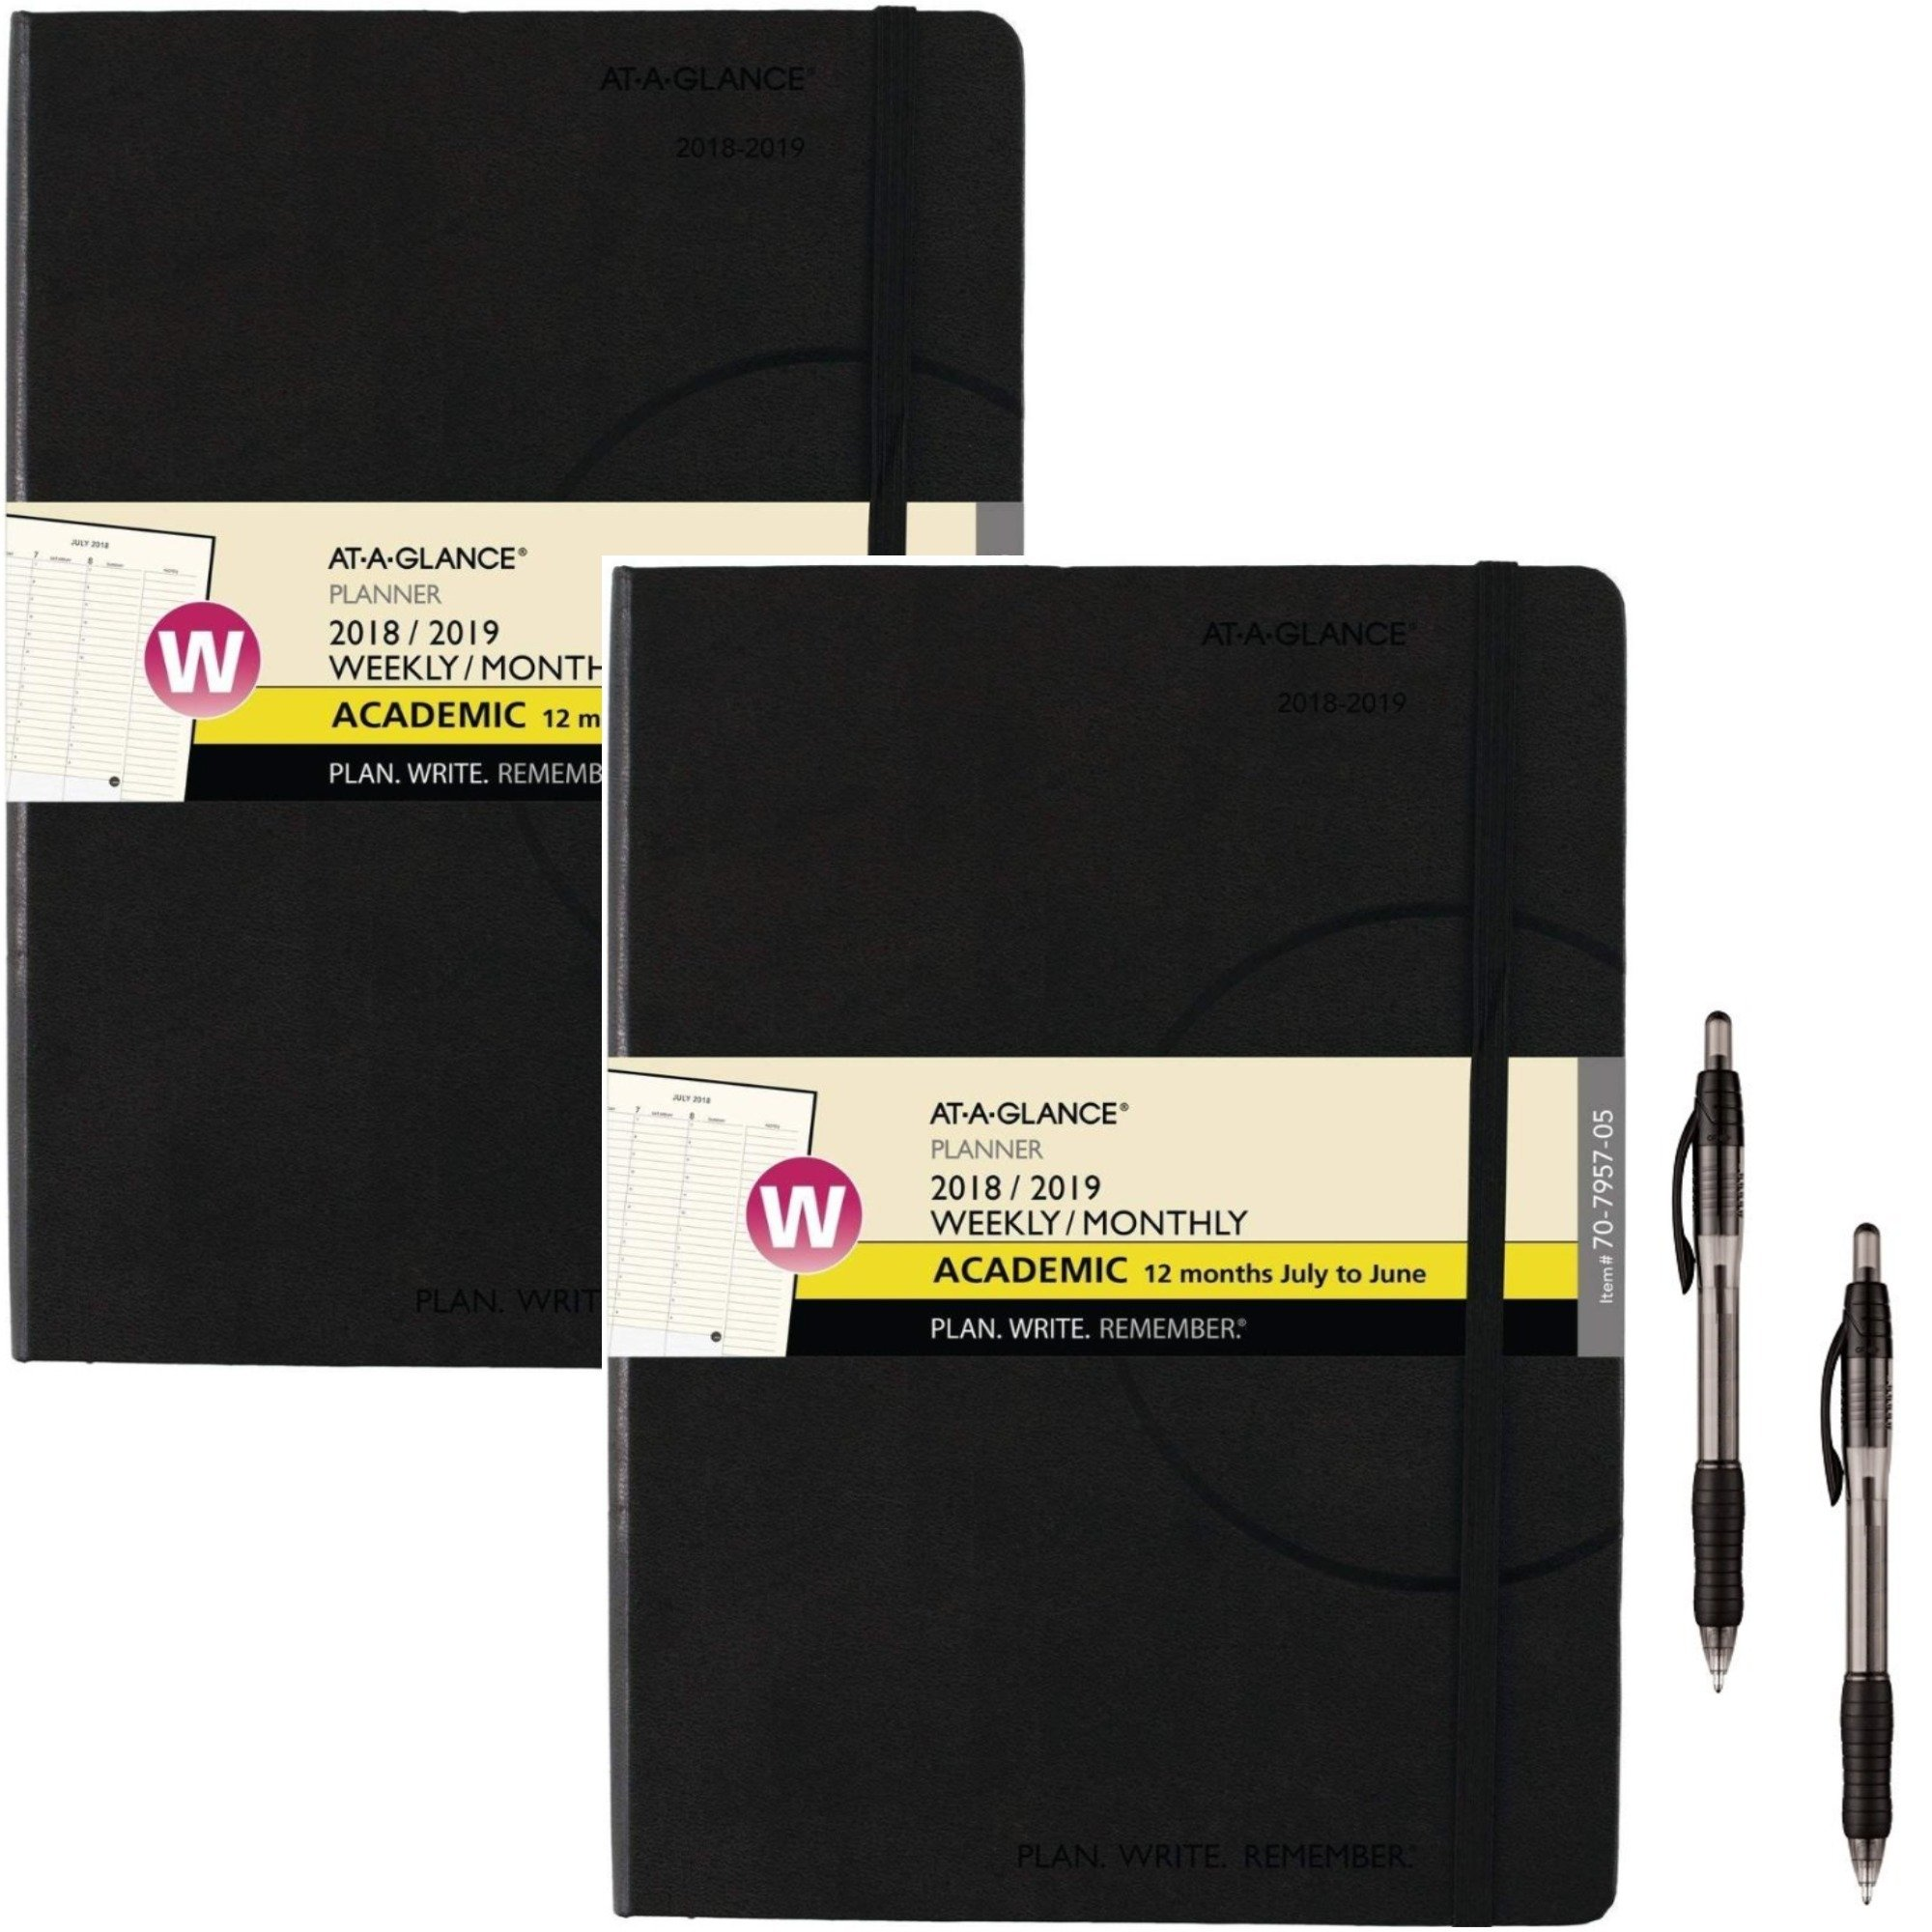 AT-A-GLANCE 2018-2019 Academic Year Weekly & Monthly Planner/Appointment Book, Medium, 7-1/2 x 10, Plan.Write.Remember. (70795705) 2 Pack - Bundle Includes 2 Black Ballpoint Pen